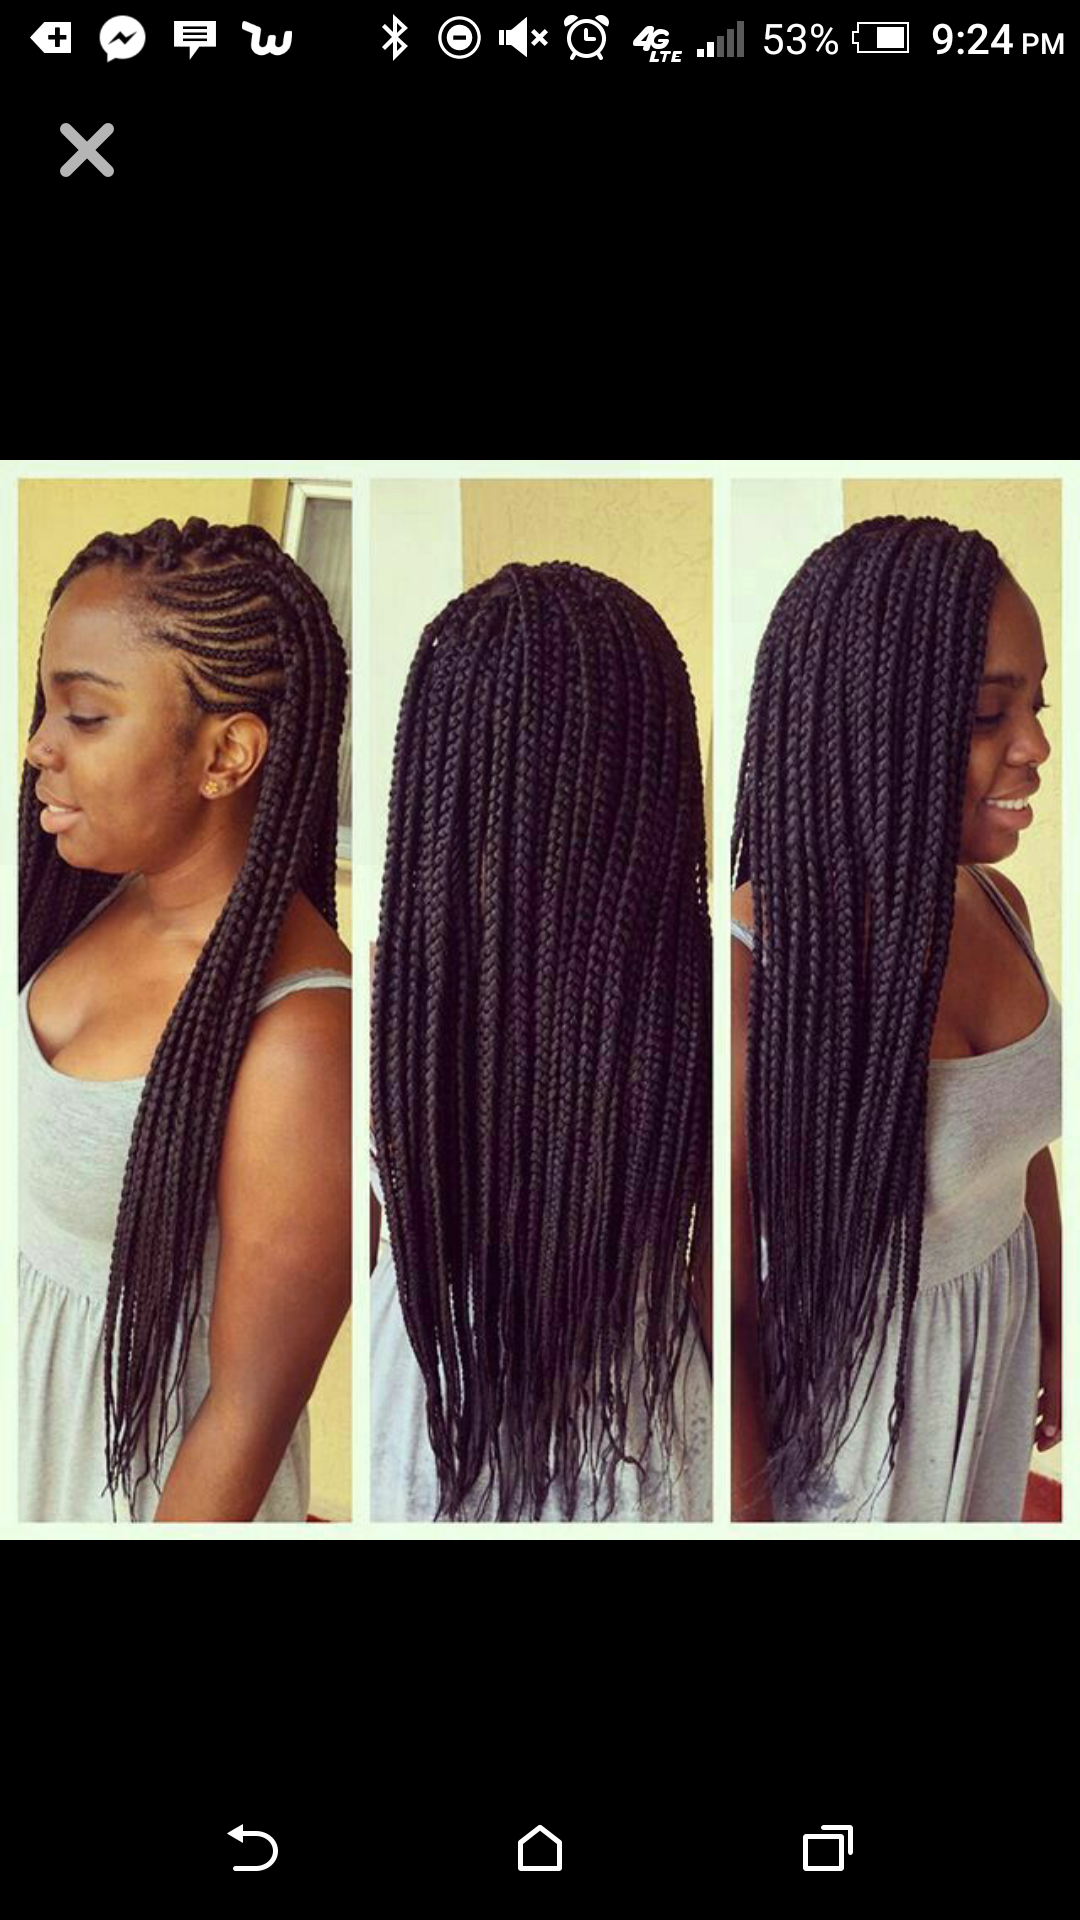 Pin By Sharon Pago On Nappy Roots Natural Hair Styles Cornrow Hairstyles Braided Hairstyles